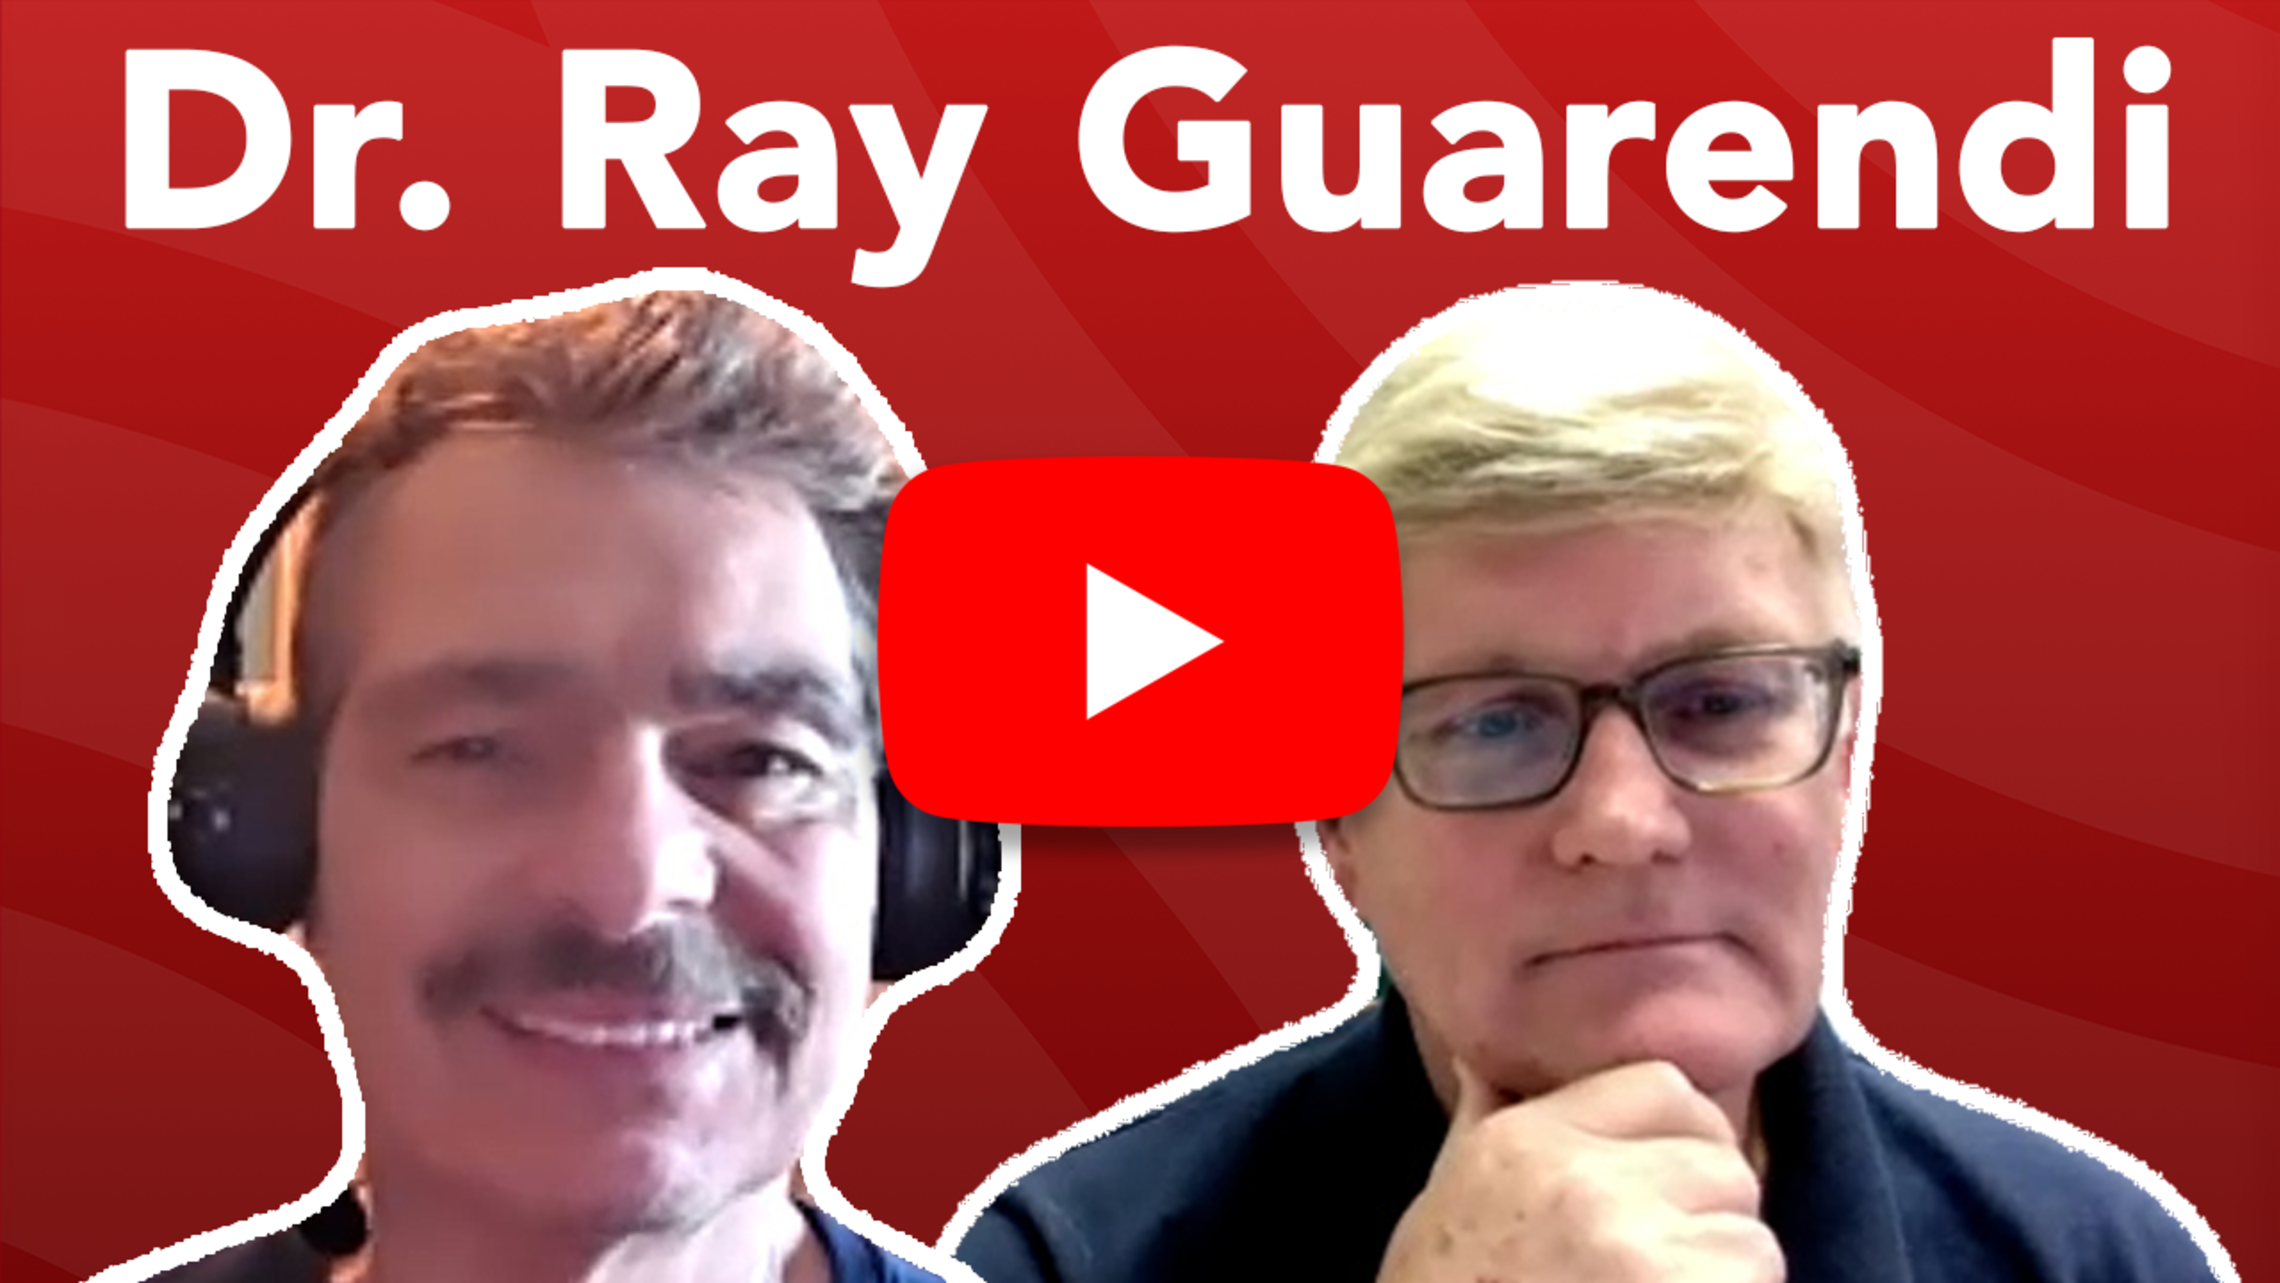 Dr. Ray Guarendi Tn Website